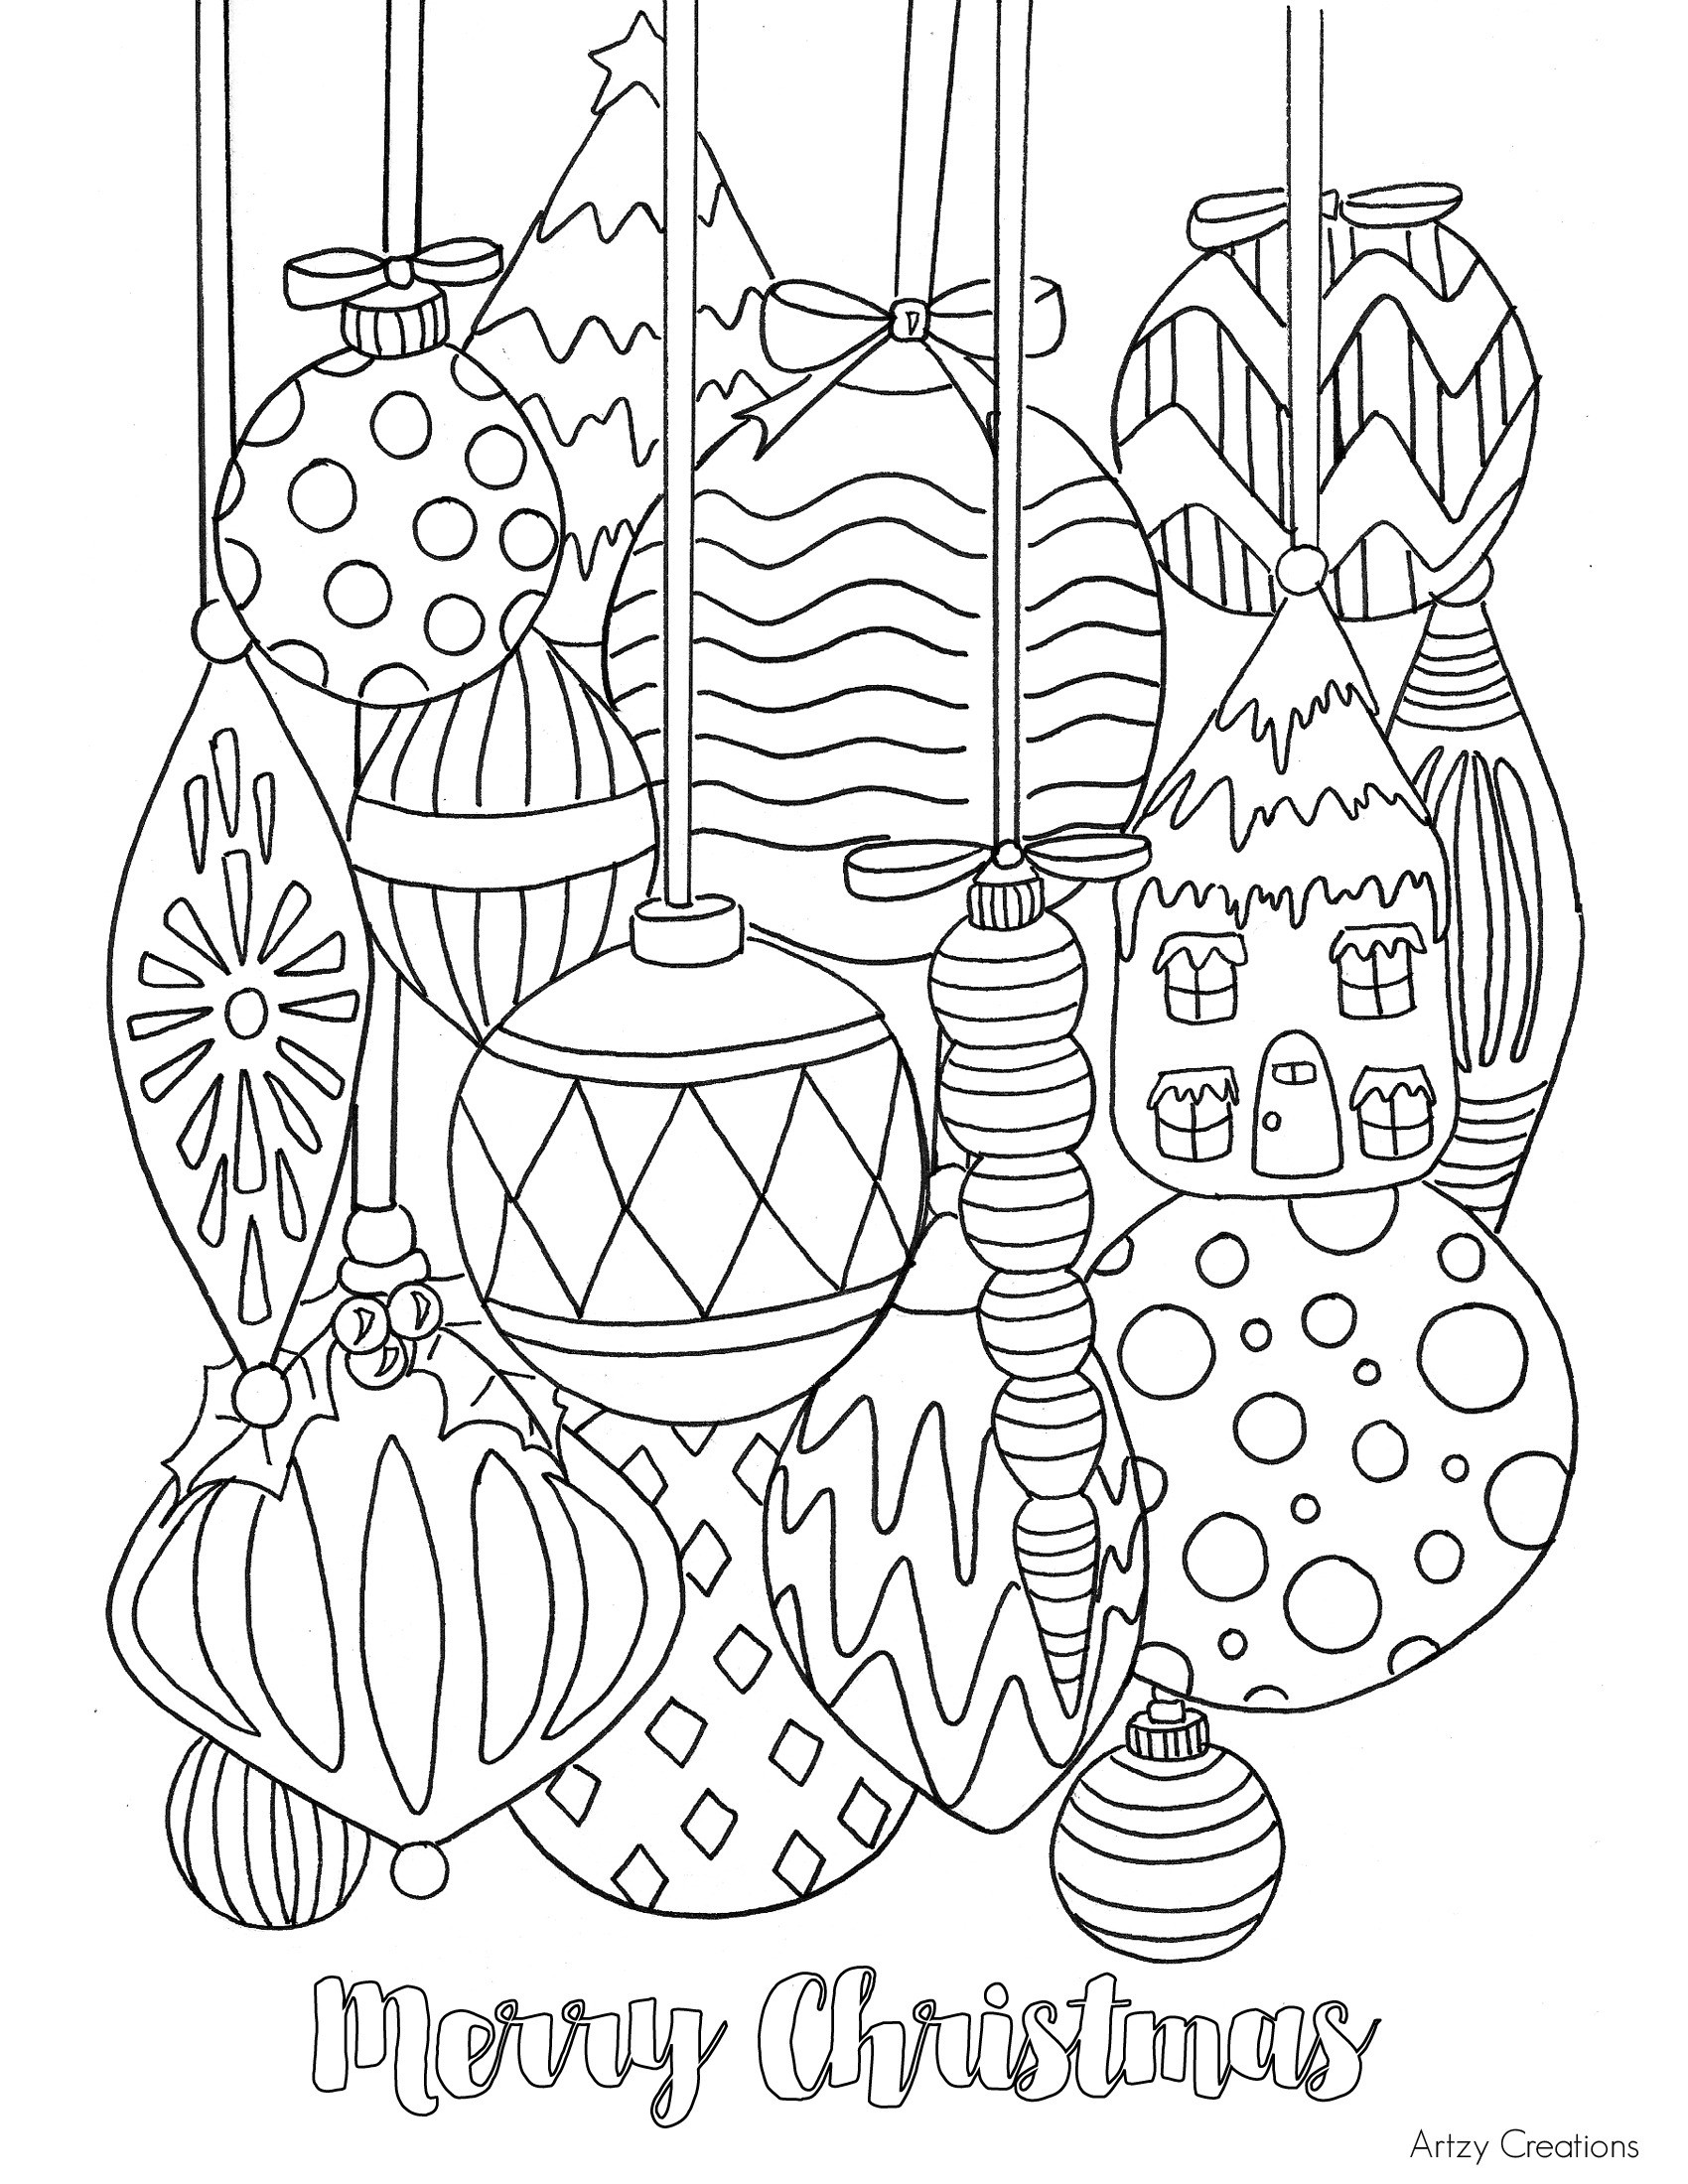 Merry Christmas Coloring Pages Pdf With Intricate Best Of